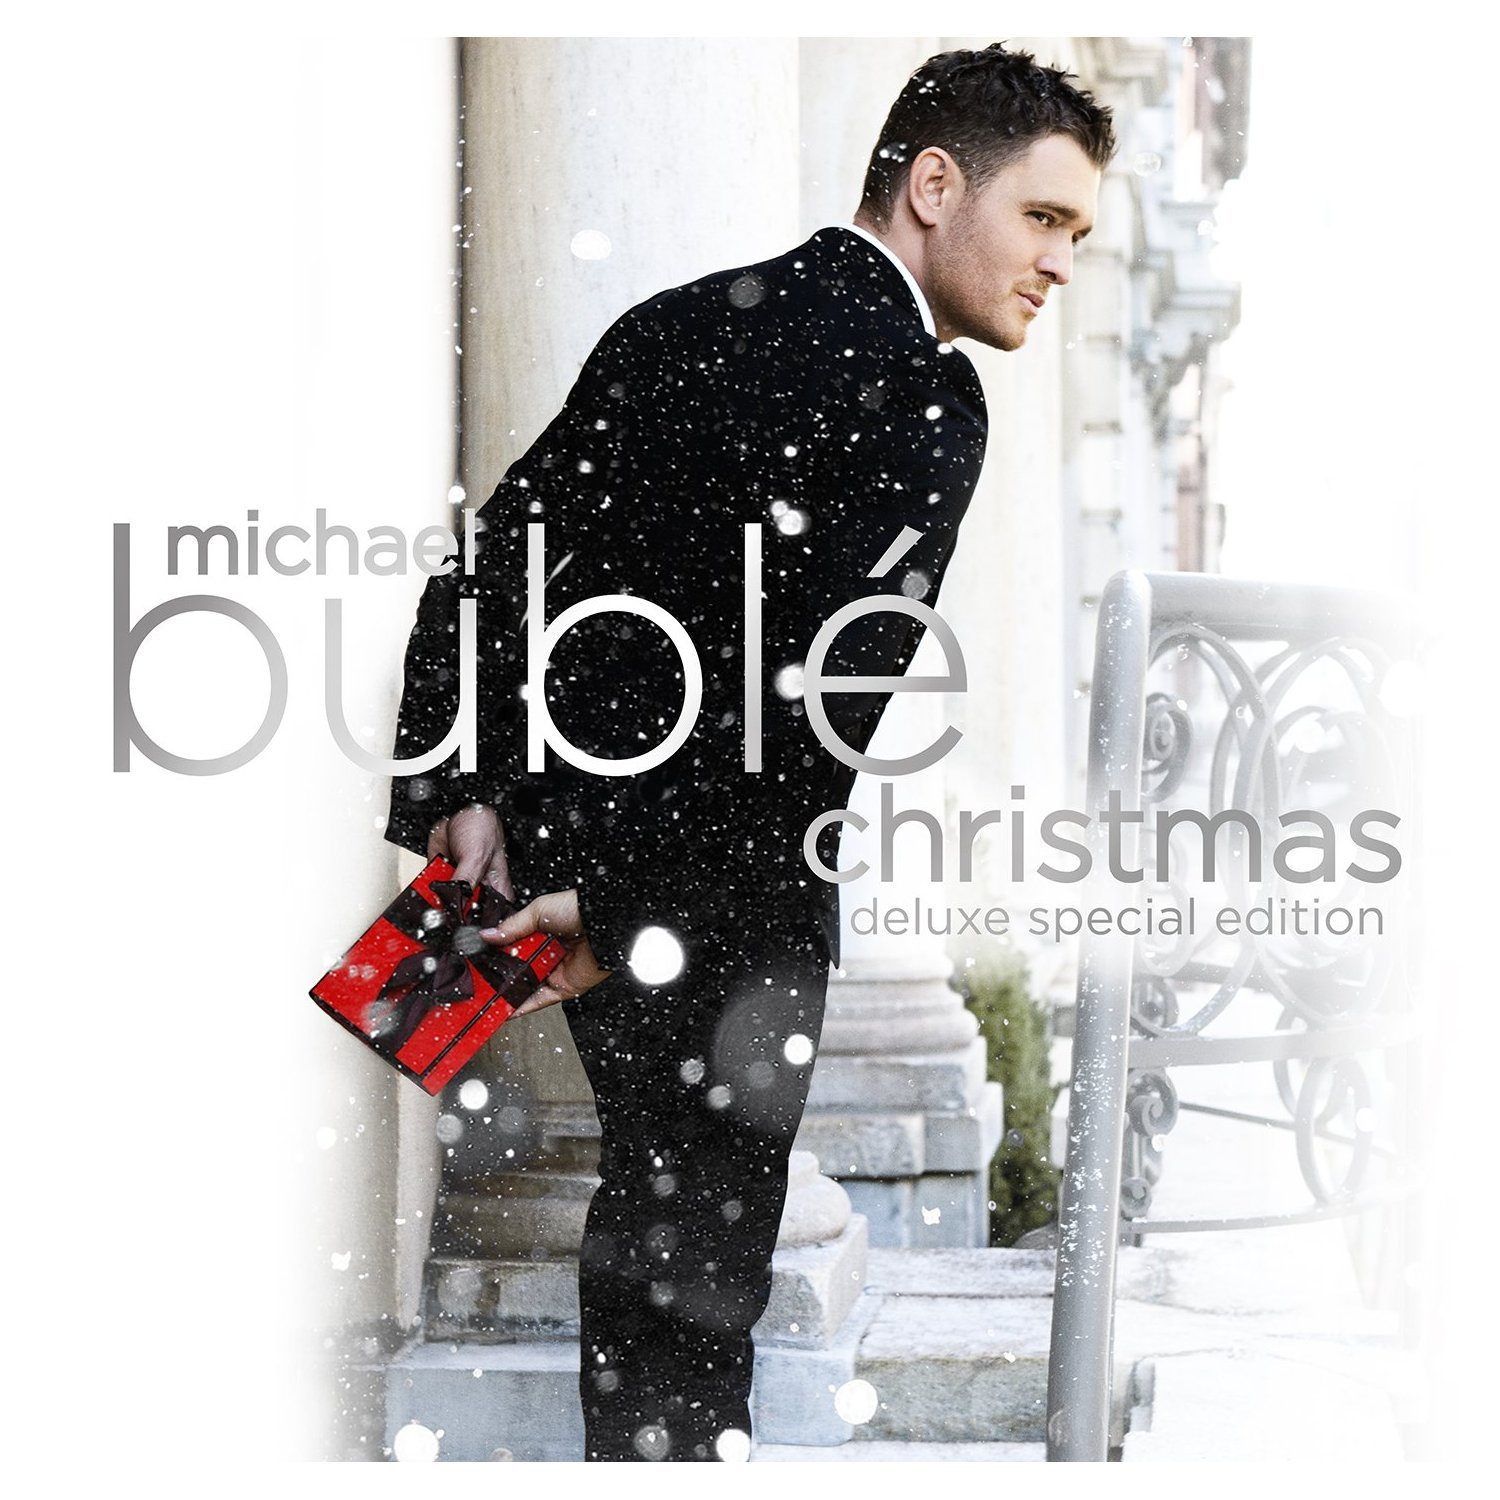 Christmas (Deluxe Special Edition) | Michael Buble at Mighty Ape NZ